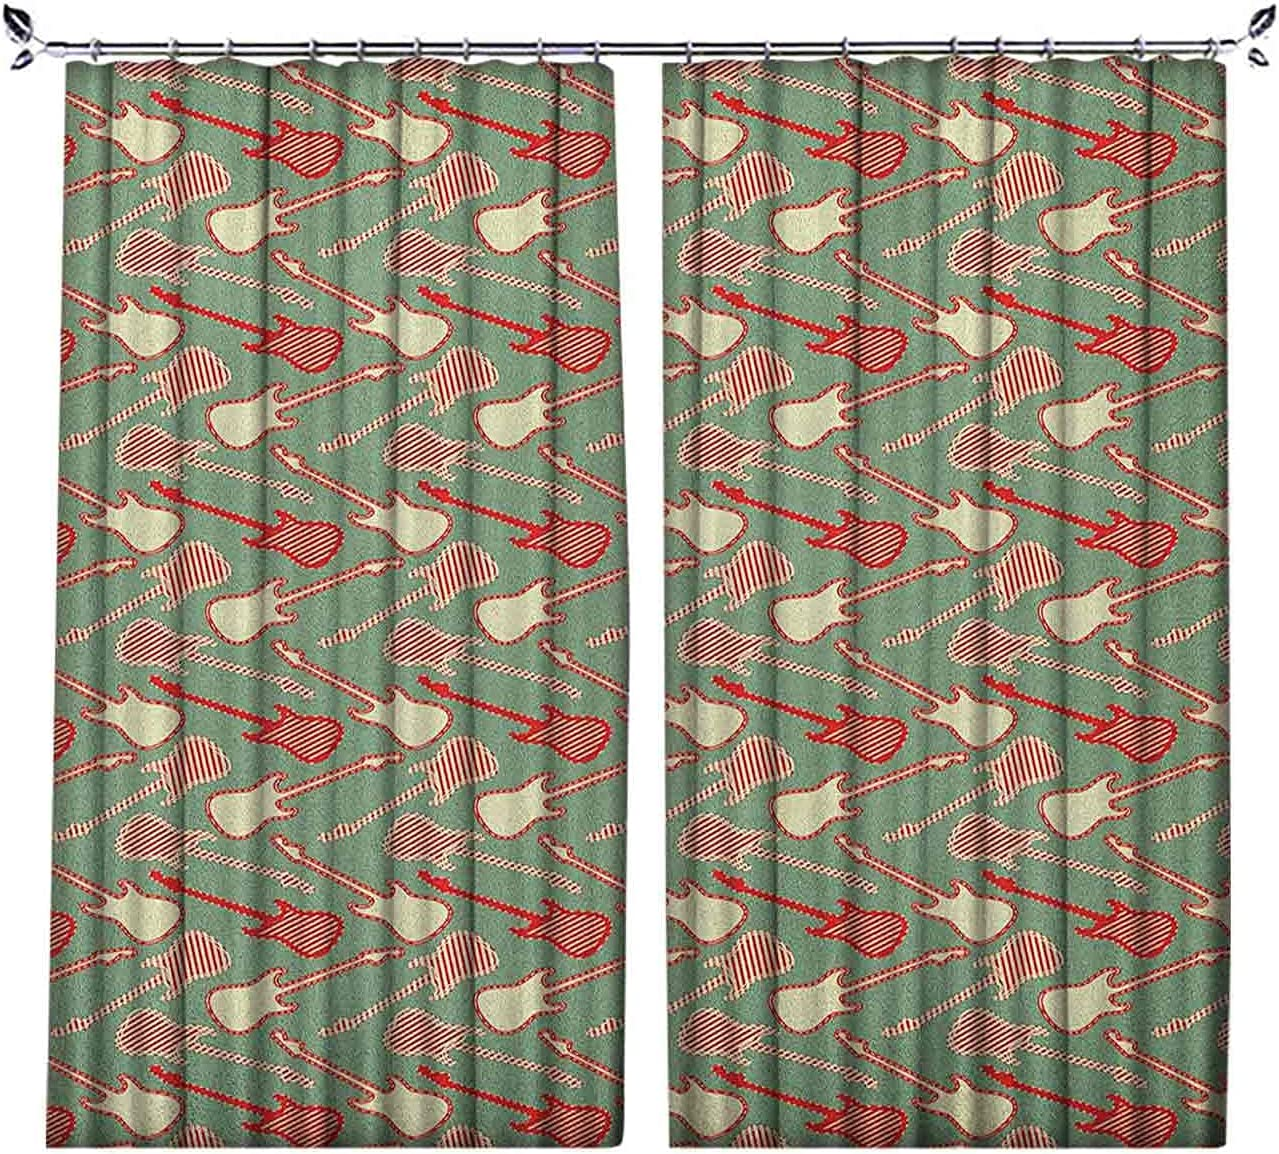 Pinch Pleat Textured Guitar Curtains Colored El Limited unisex Special Price Striped and Two